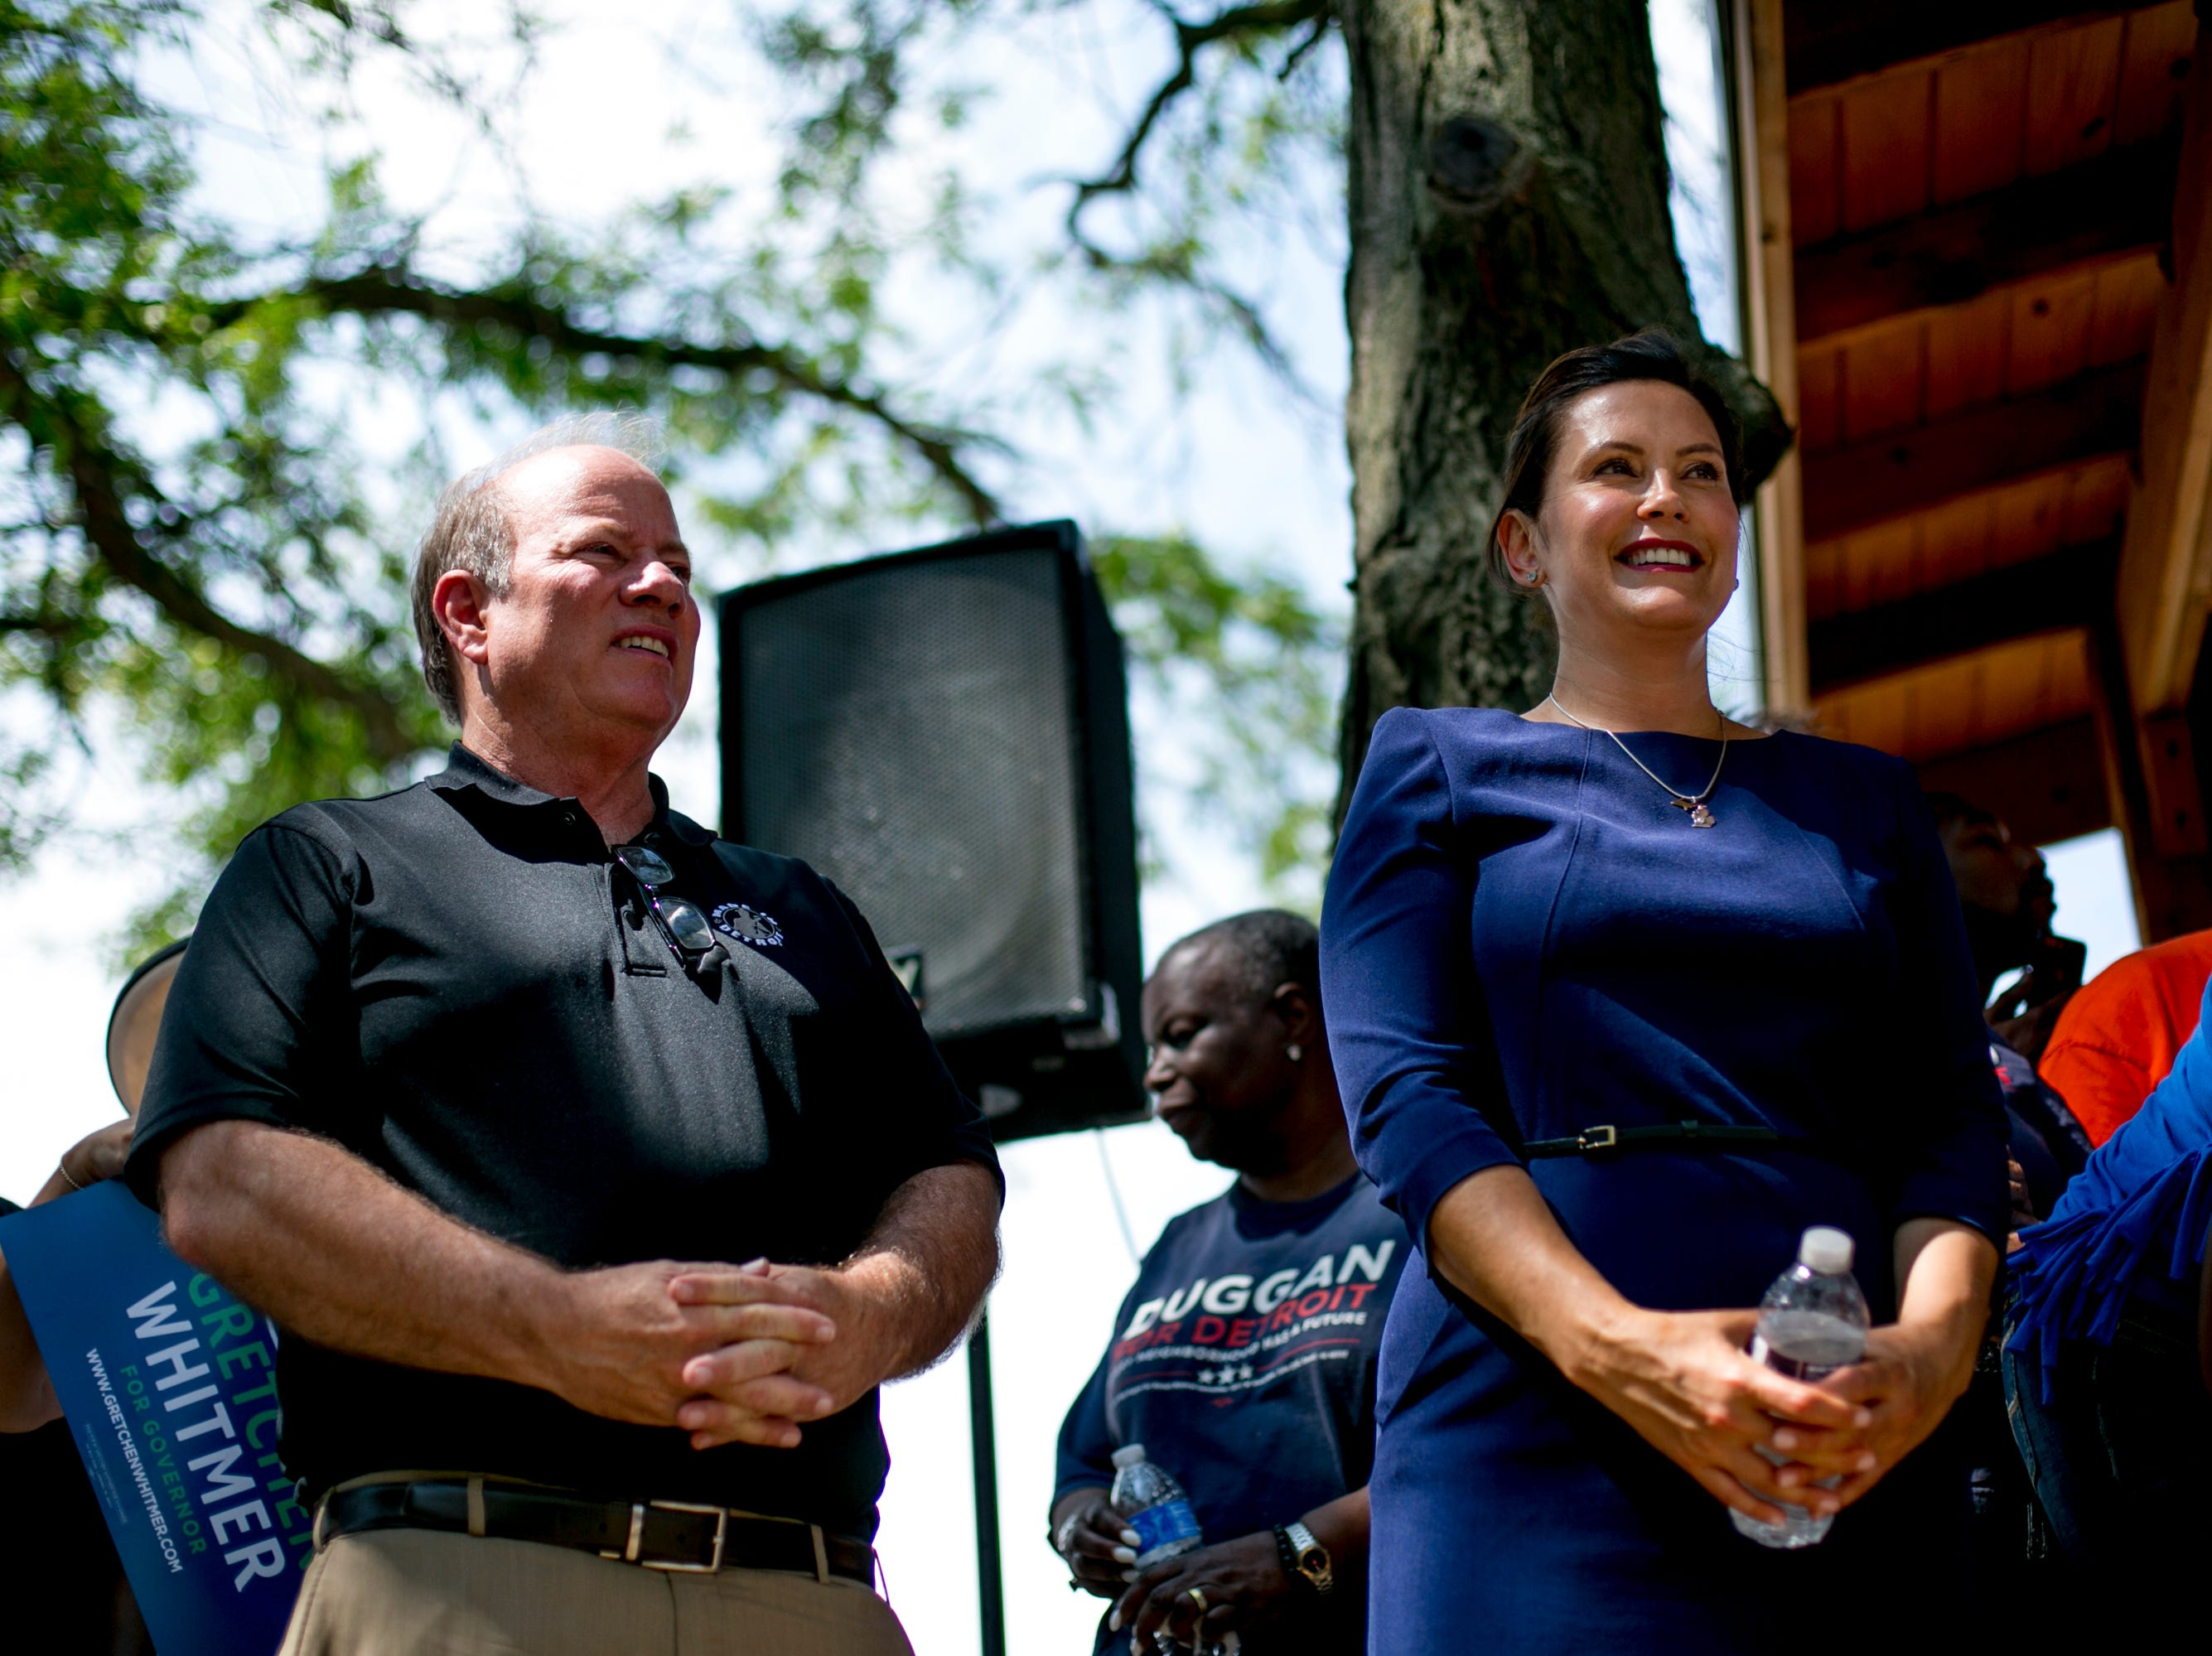 Gubernatorial candidate Gretchen Whitmer stands with Detroit Mayor Mike Duggan at Gordon Park.